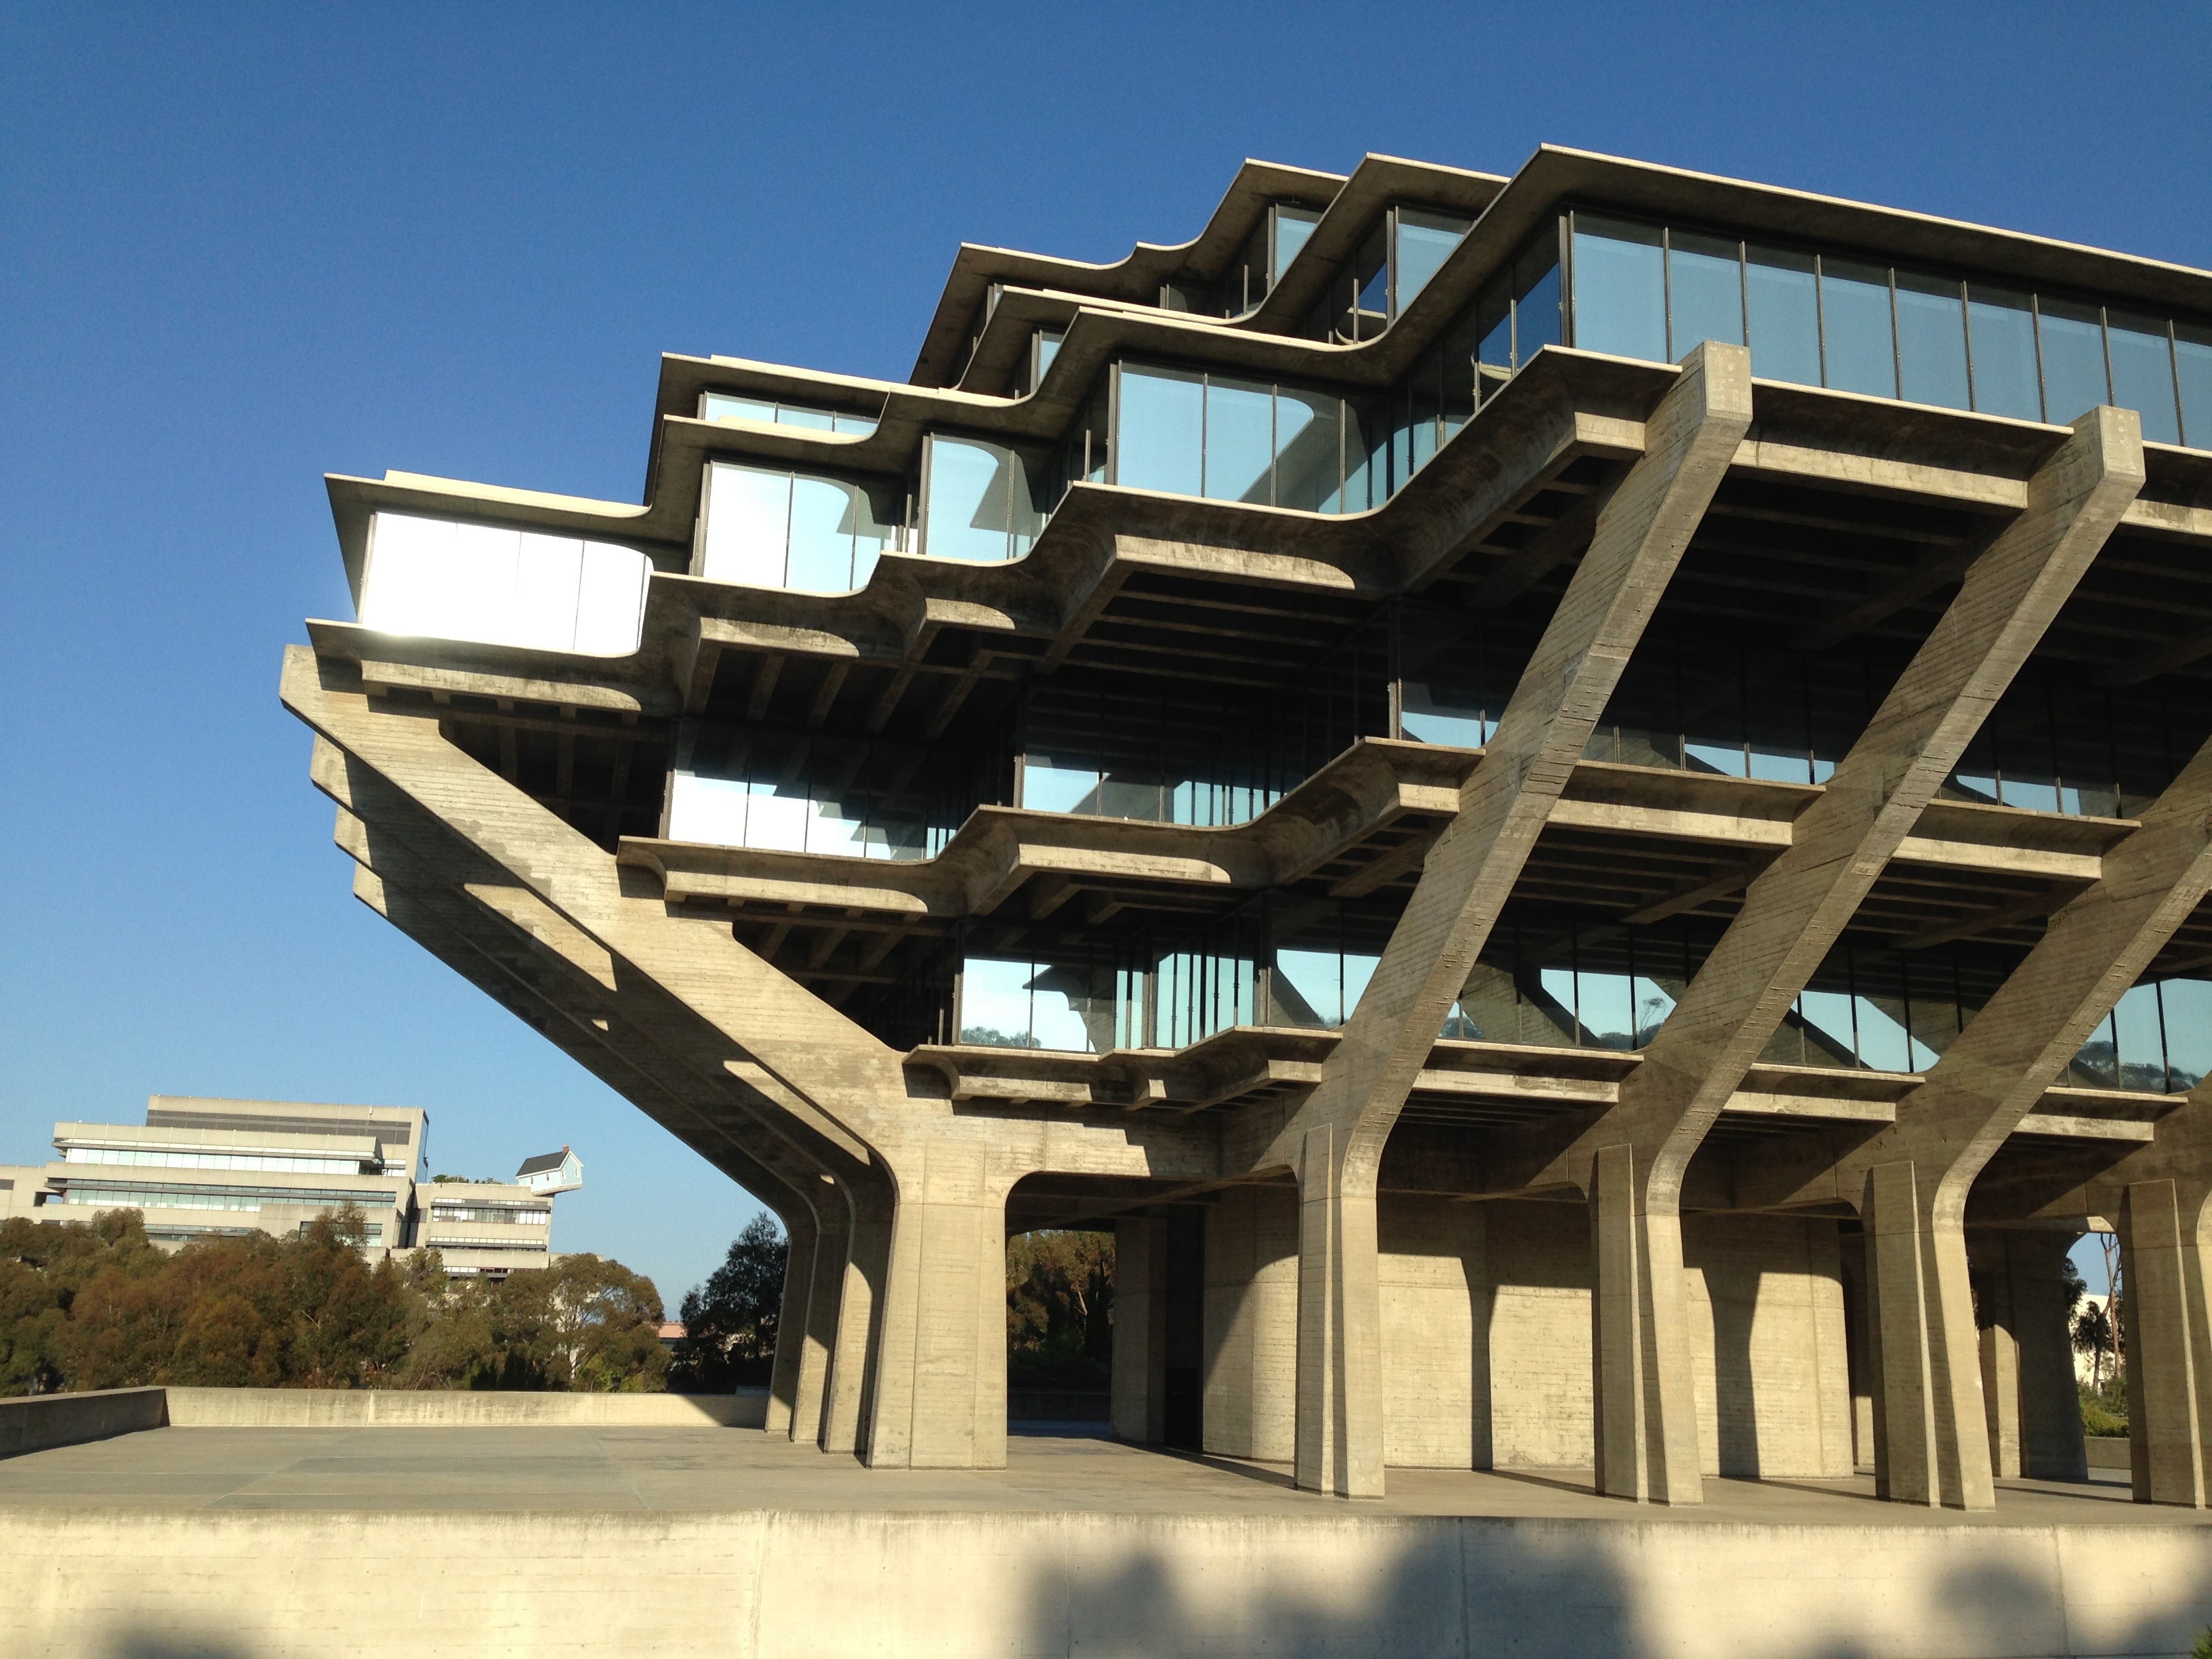 File:Geisel Library 8 2013-08-16.jpg - Wikimedia Commons: commons.wikimedia.org/wiki/File:Geisel_Library_8_2013-08-16.jpg